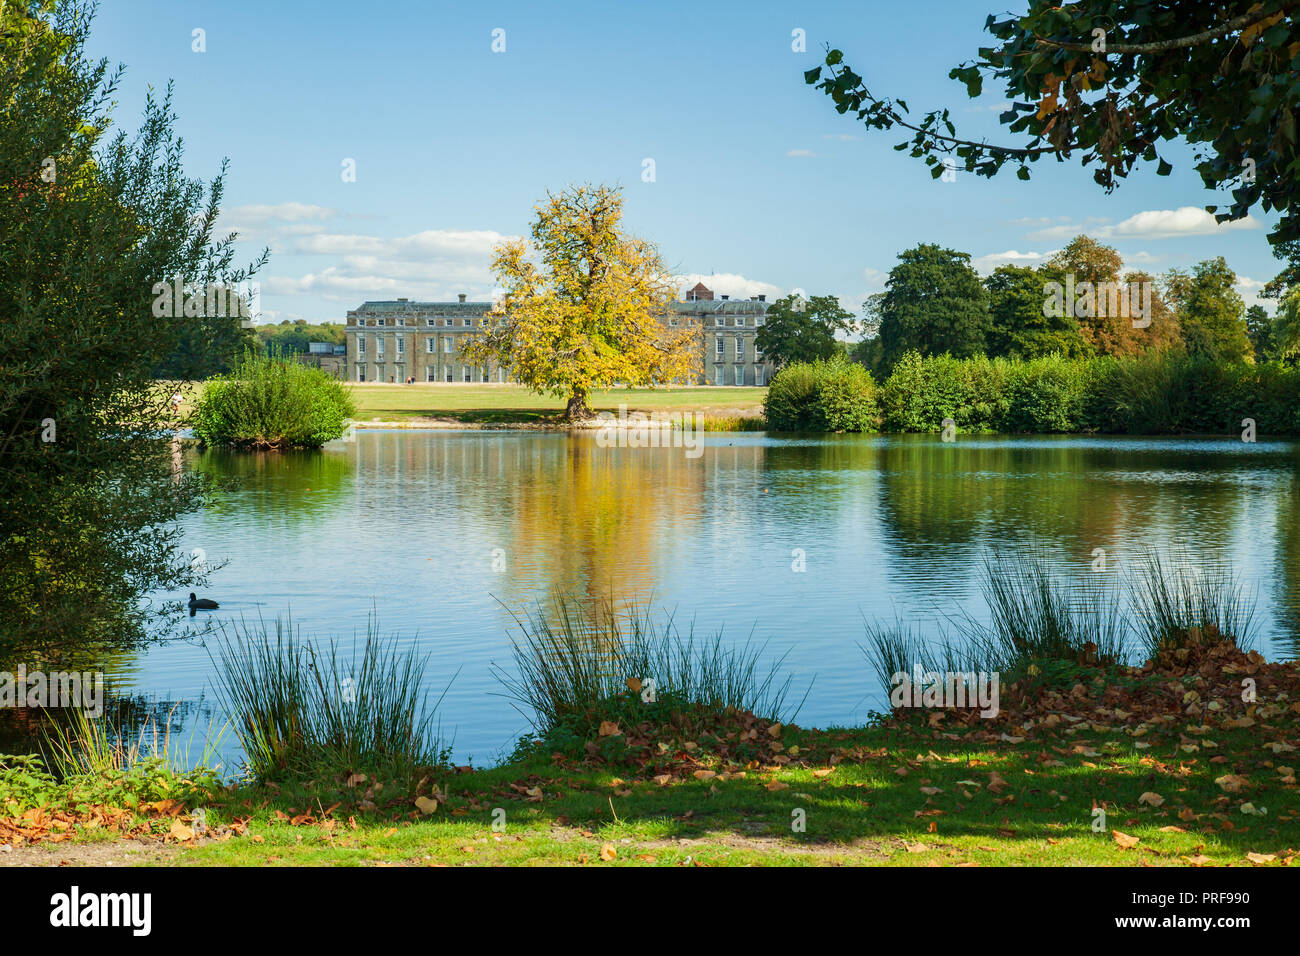 Summer afternoon at Petworth Park, West Sussex, England. - Stock Image